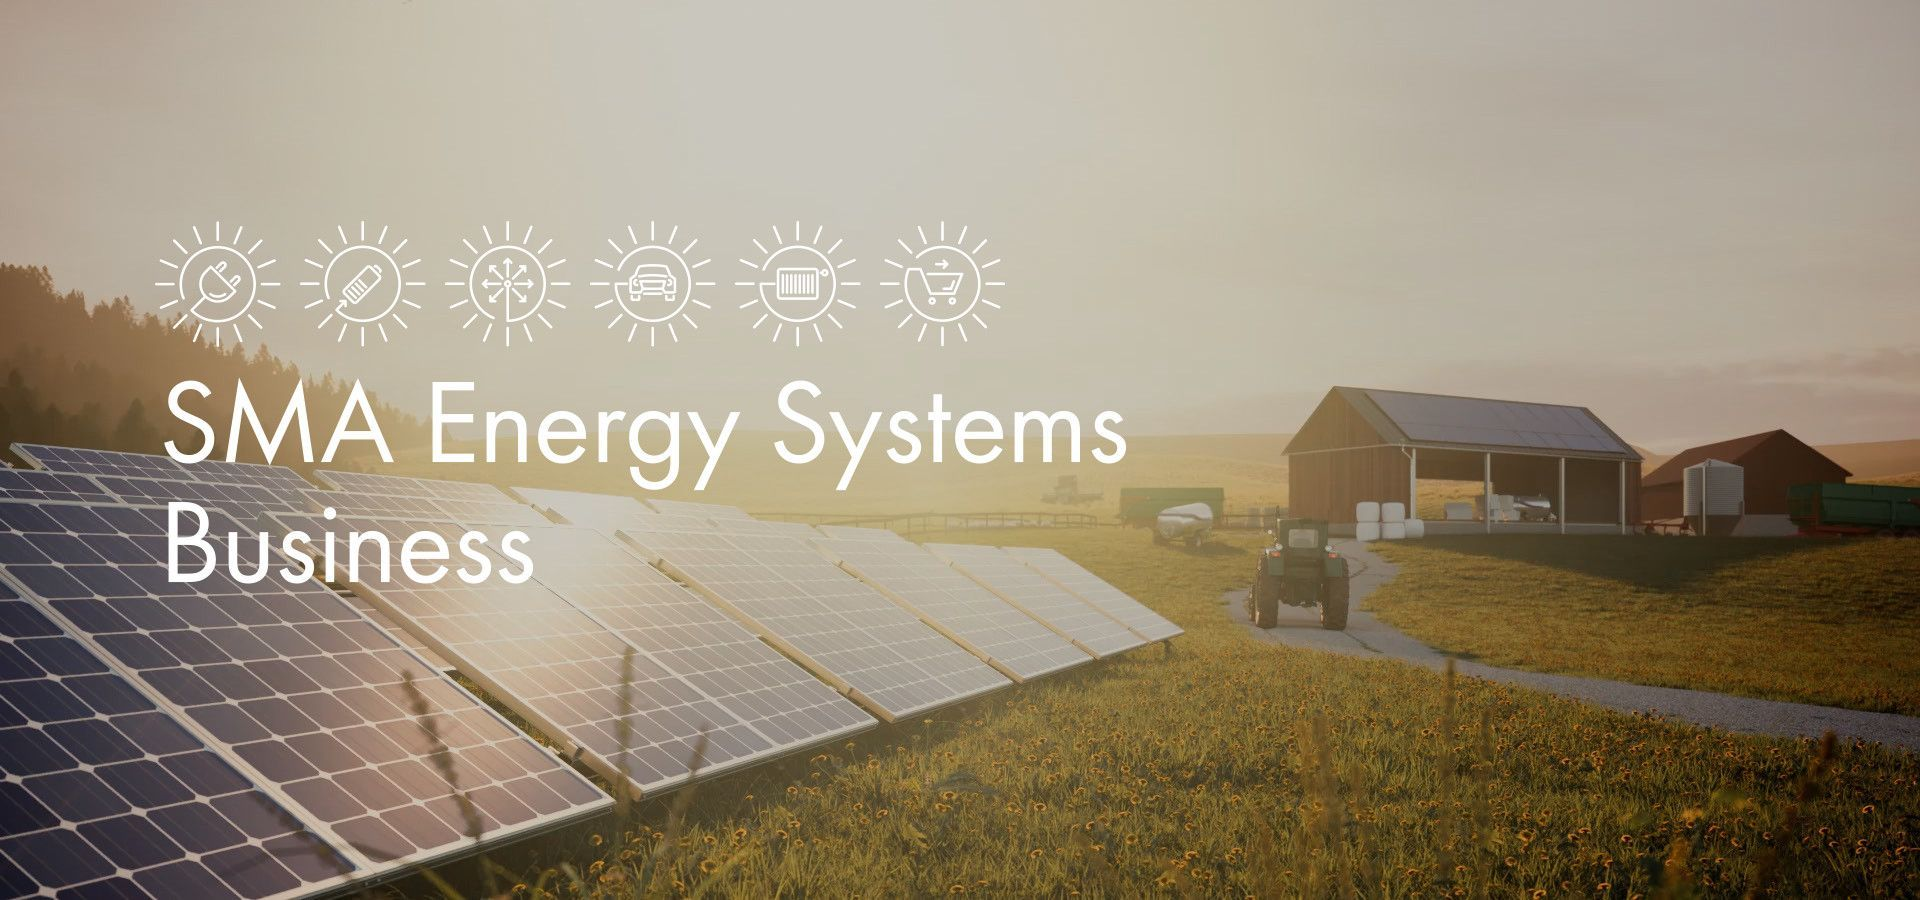 SMA Energy Systems Business